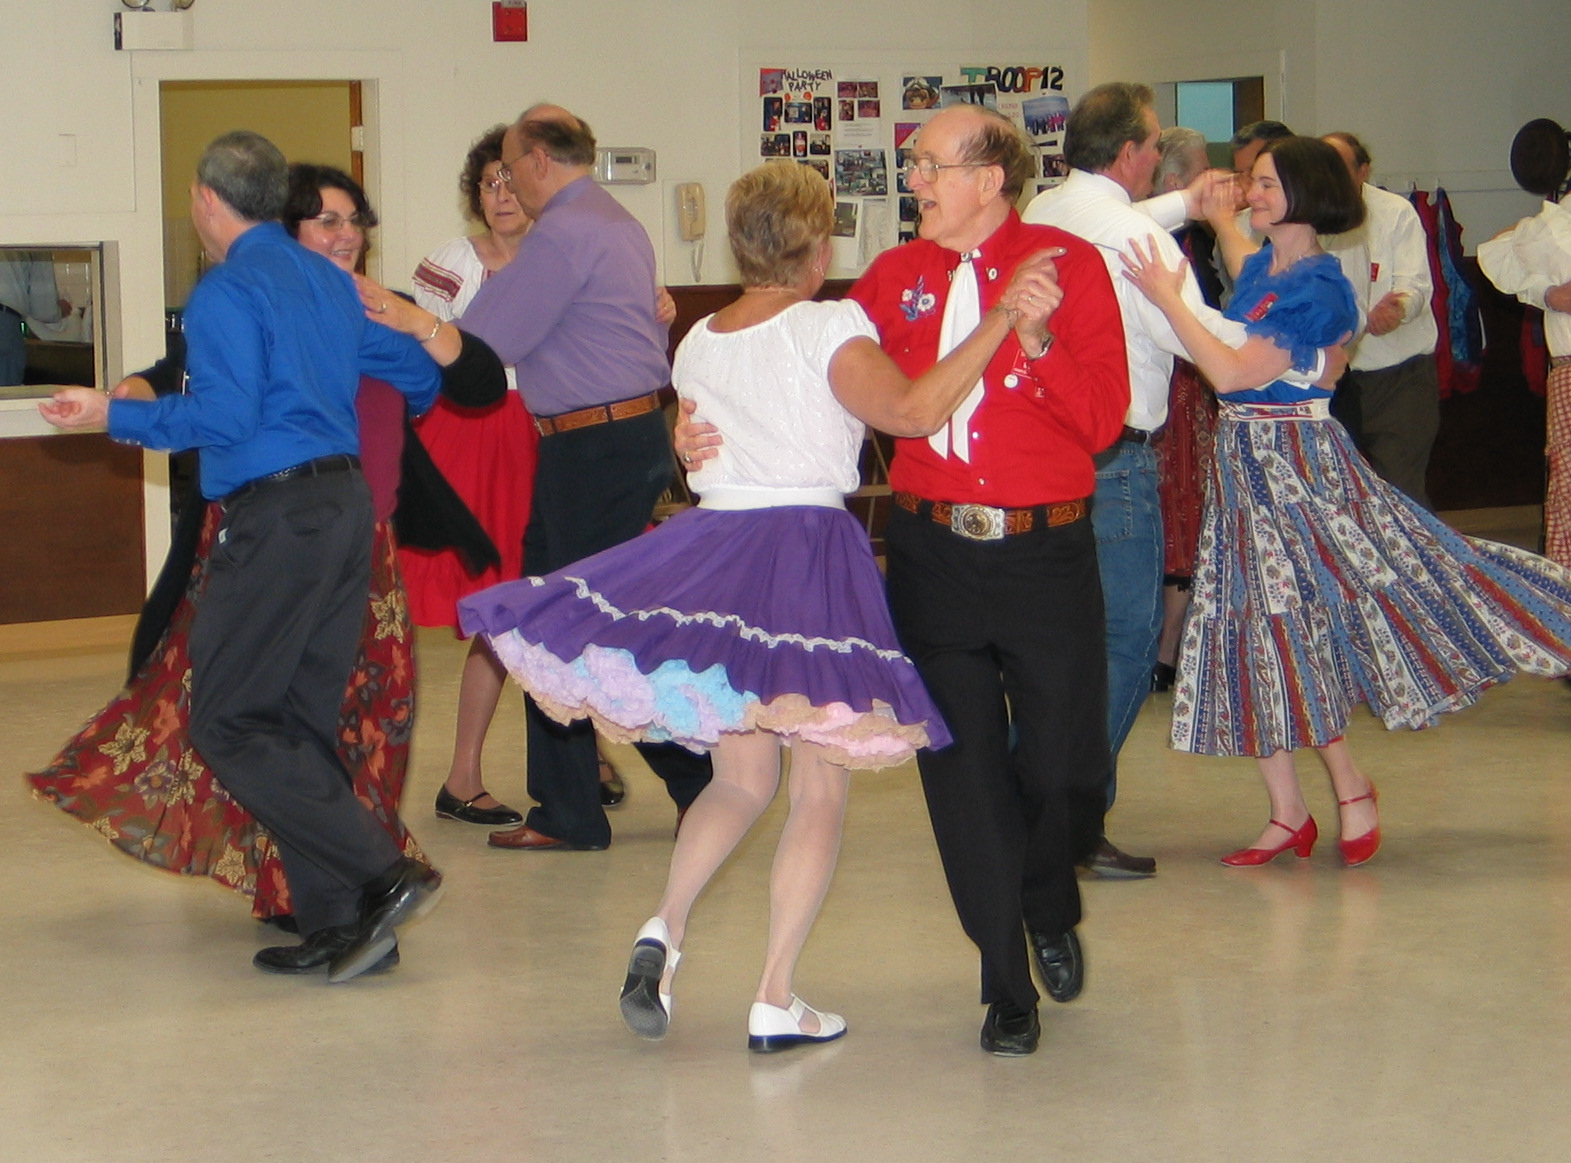 Dance Activities for Seniors.jpg